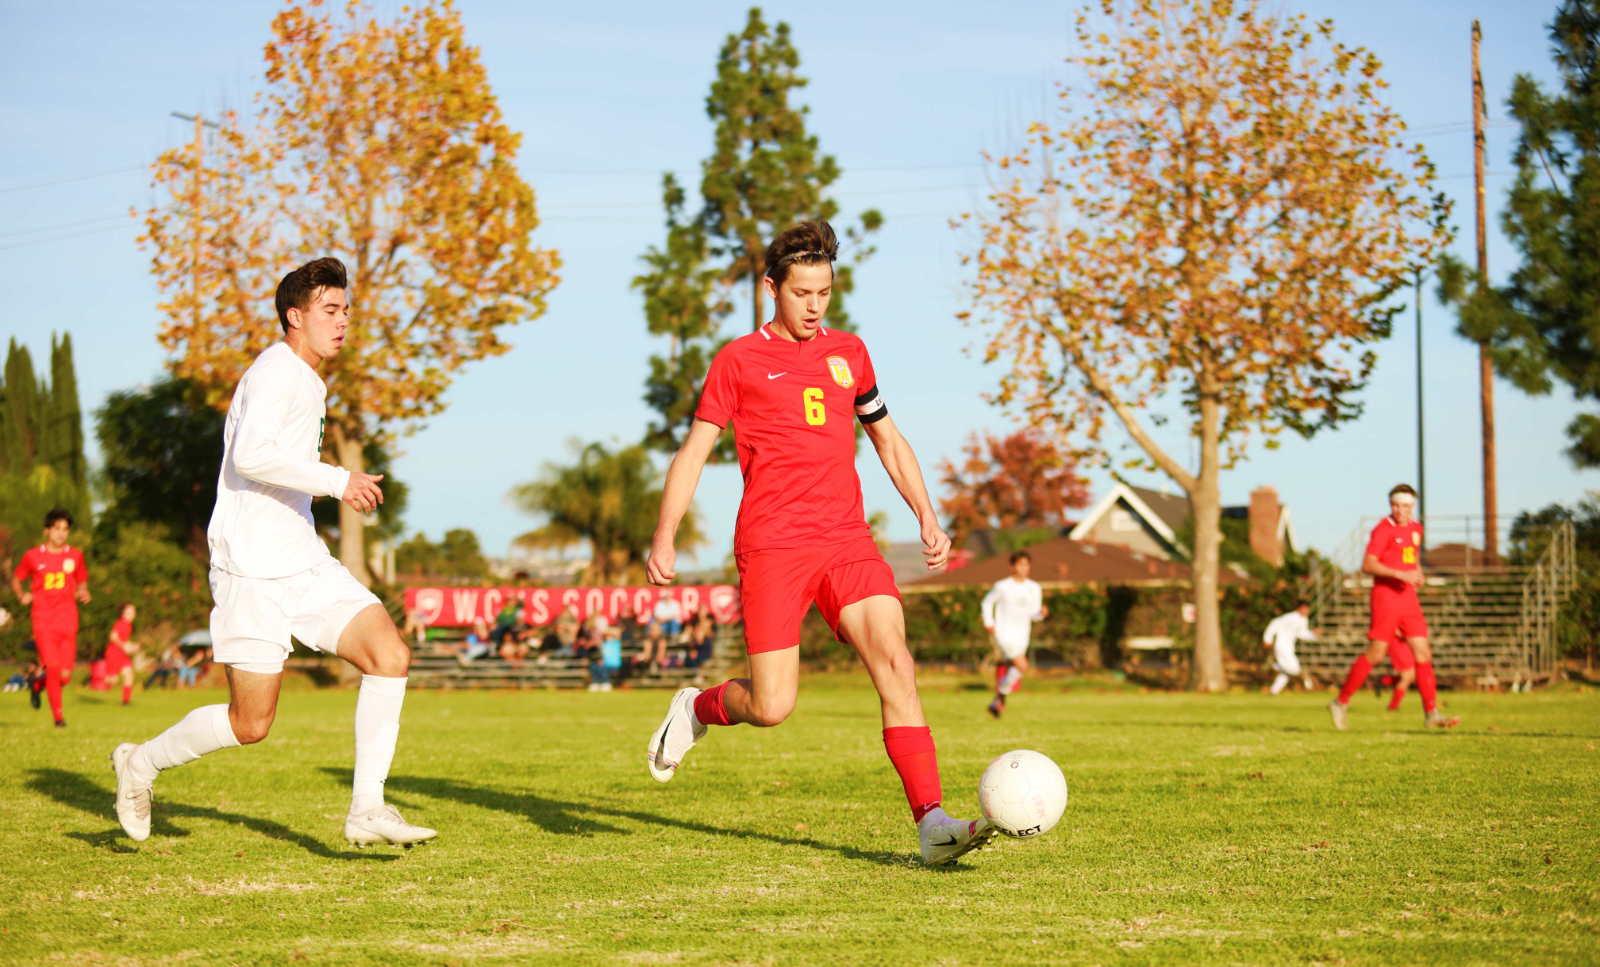 WCHS Varsity Boys Soccer vs. Cantwell Pictures (Volume 2)